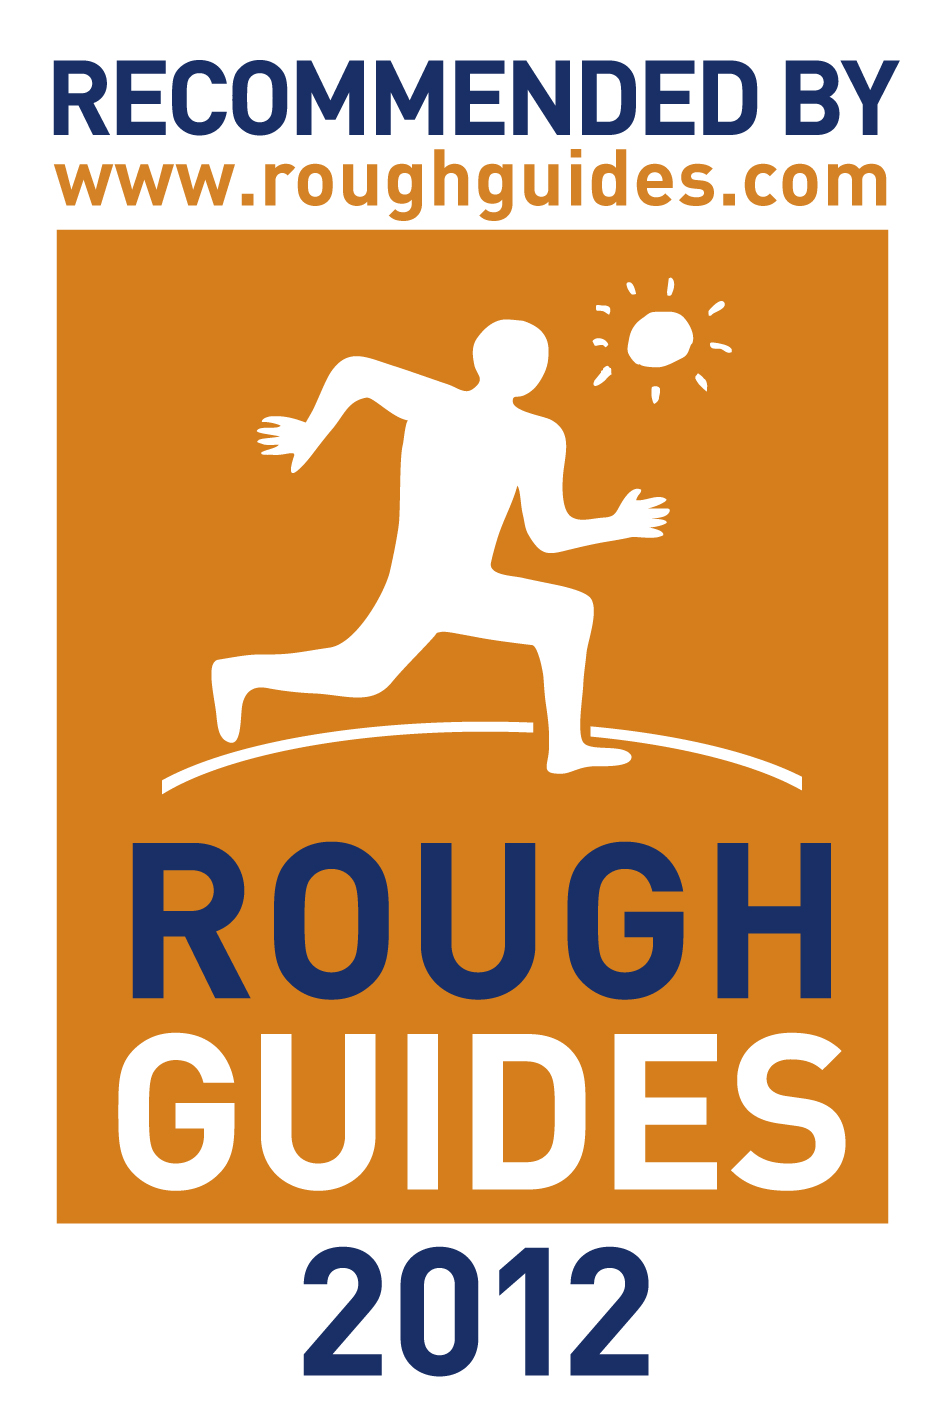 Rough Guide Recommends Us